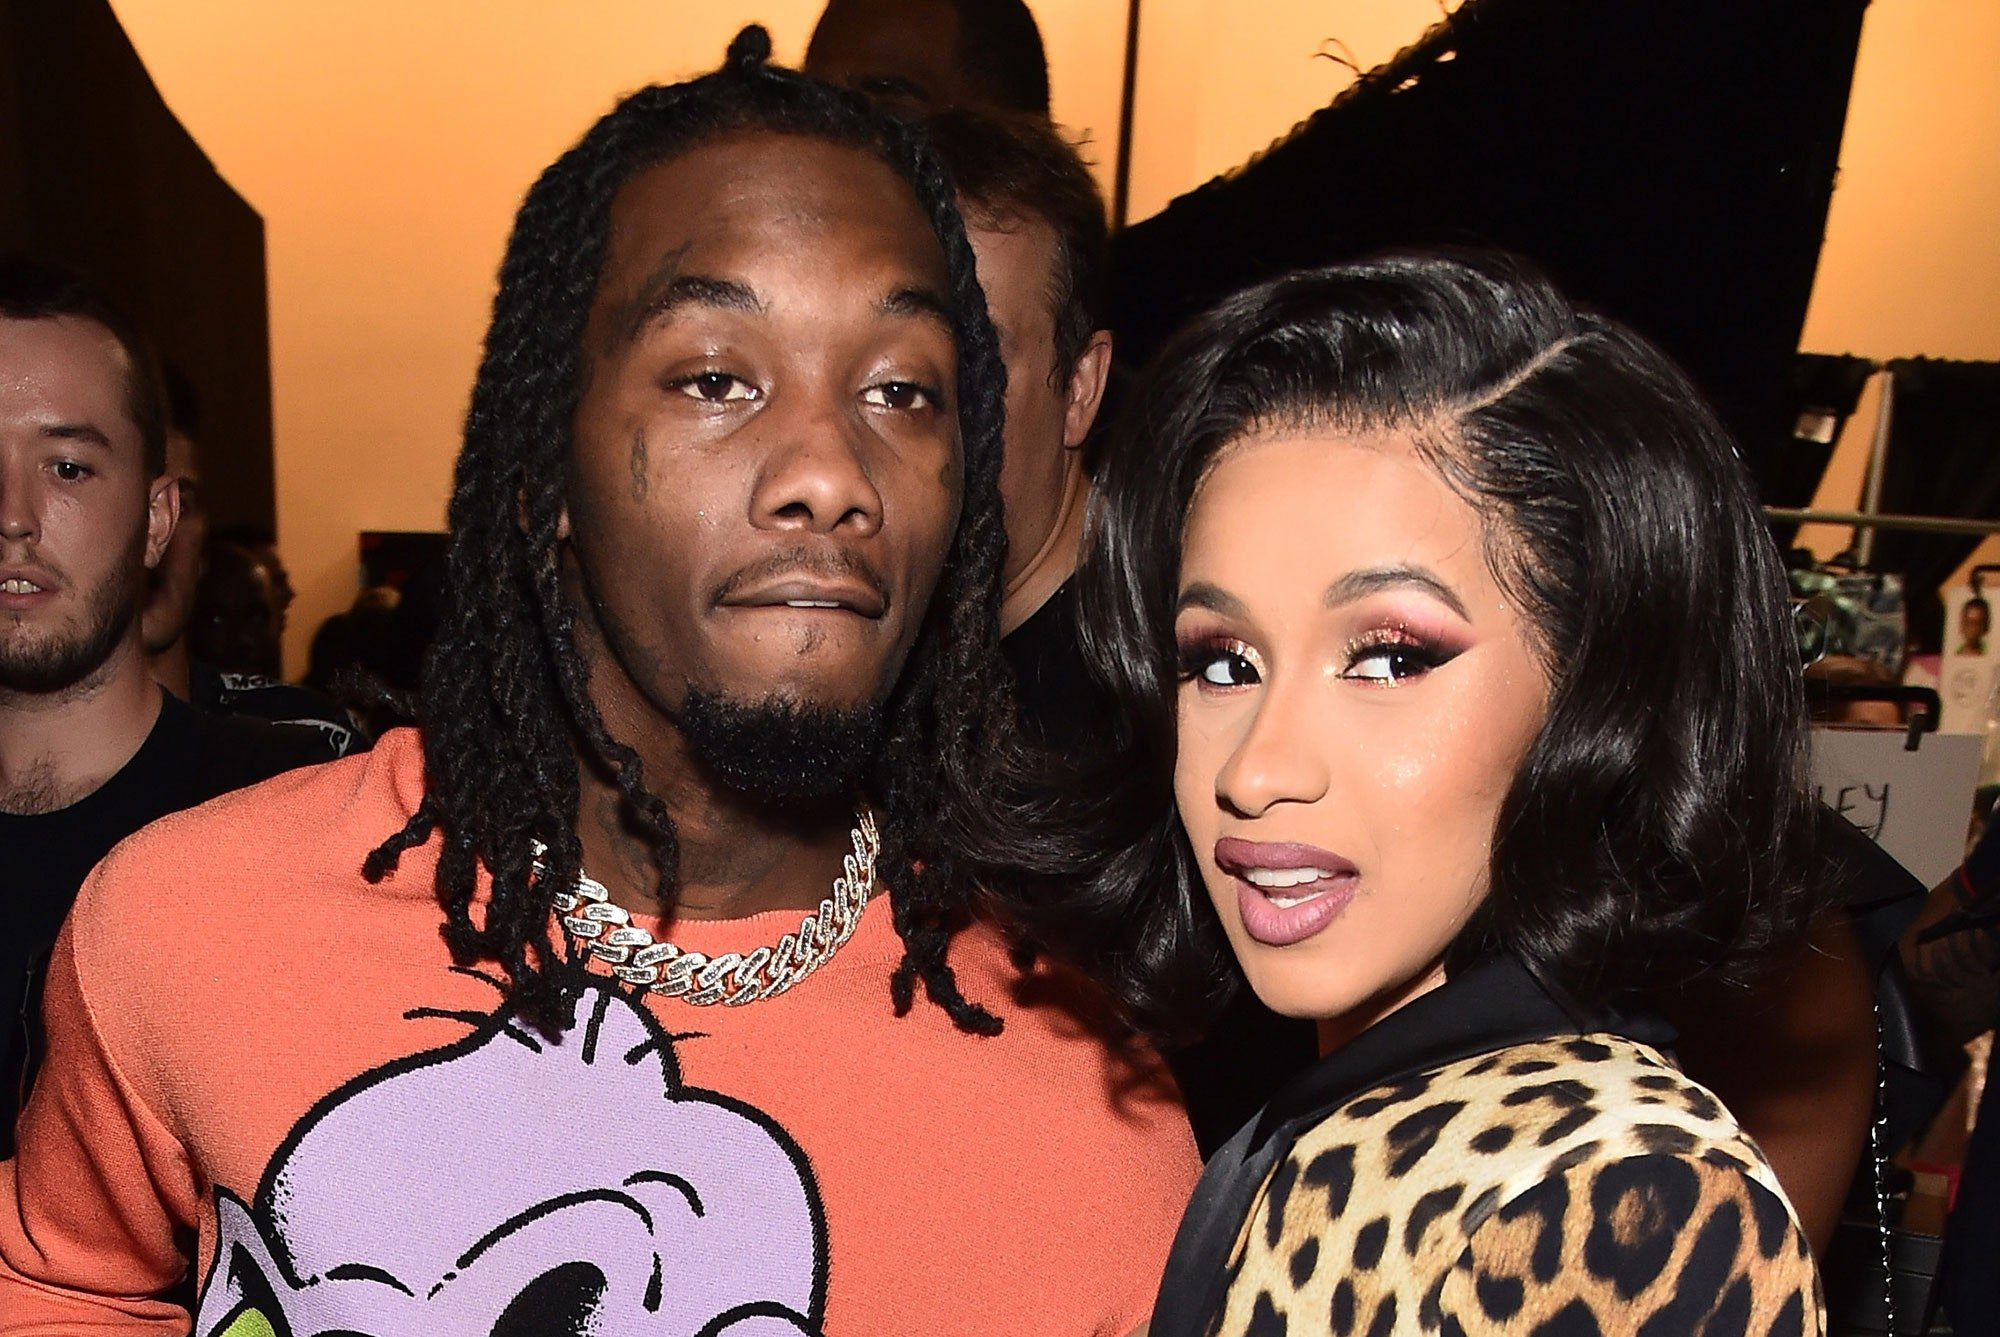 Offset Gifts Cardi B Massive Kulture Billboard For Her Birthday And She Loves It – Will She Take Him Back?